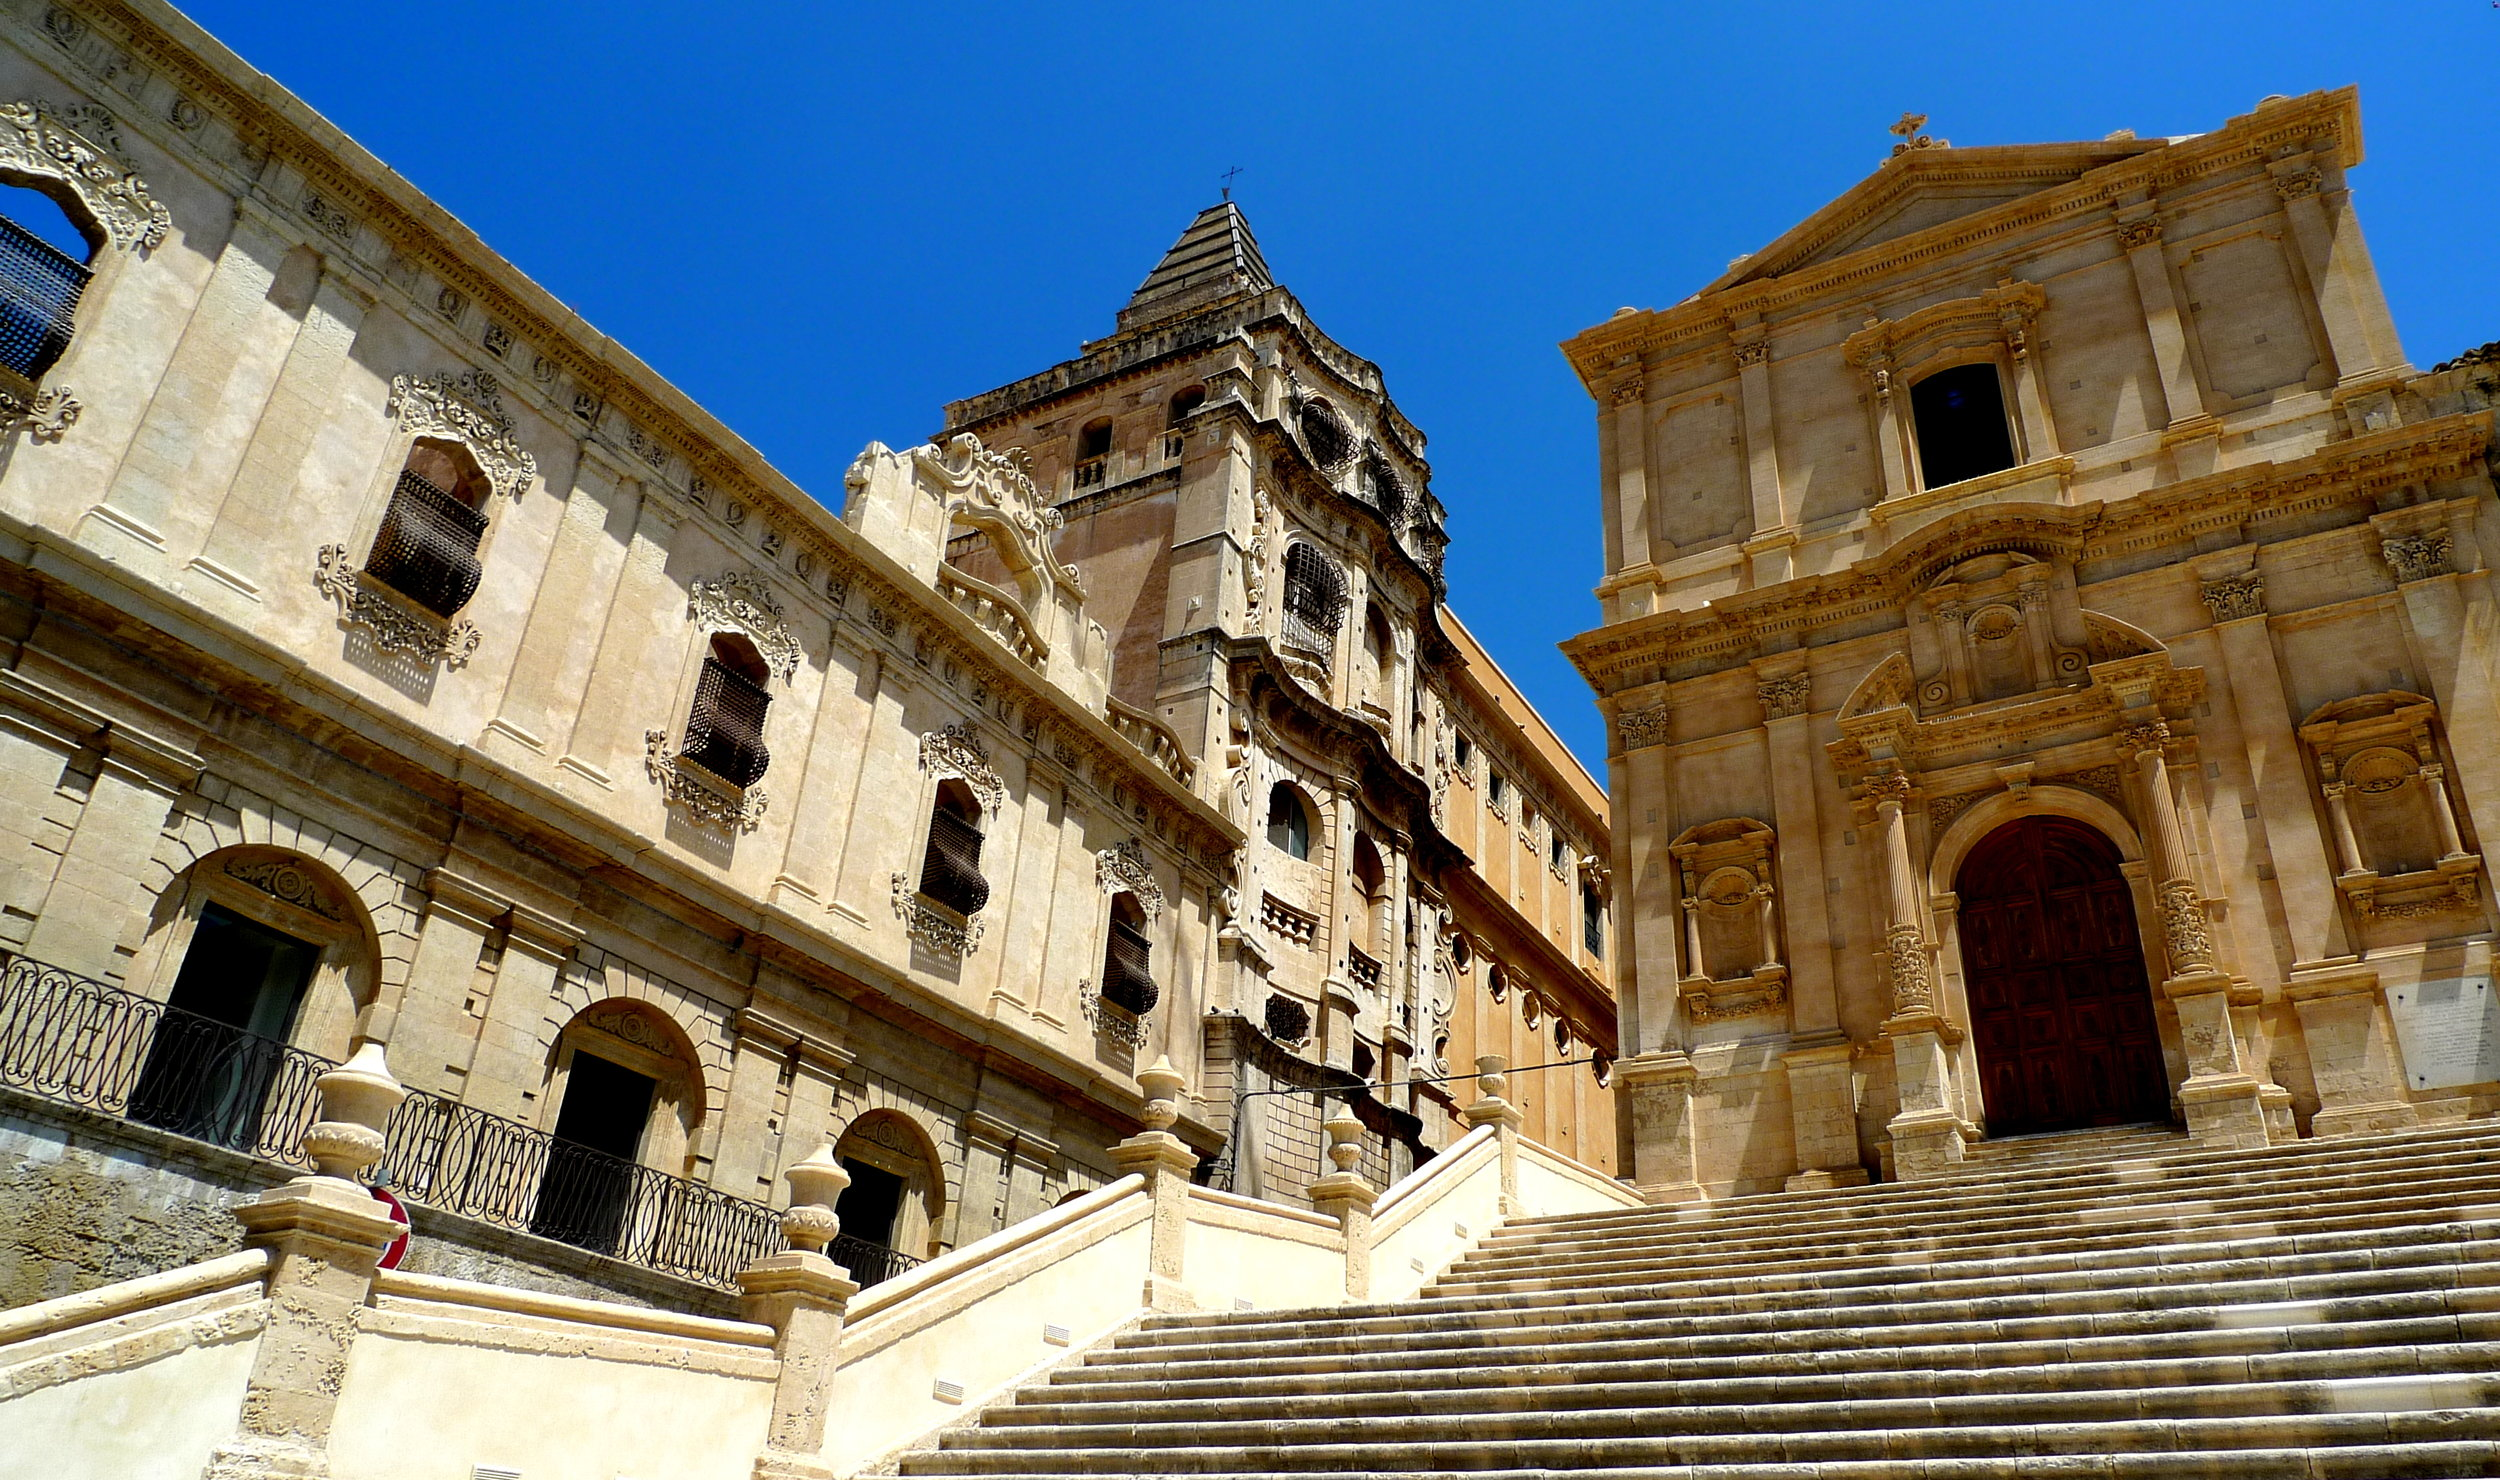 The baroque town of Noto, Sicily